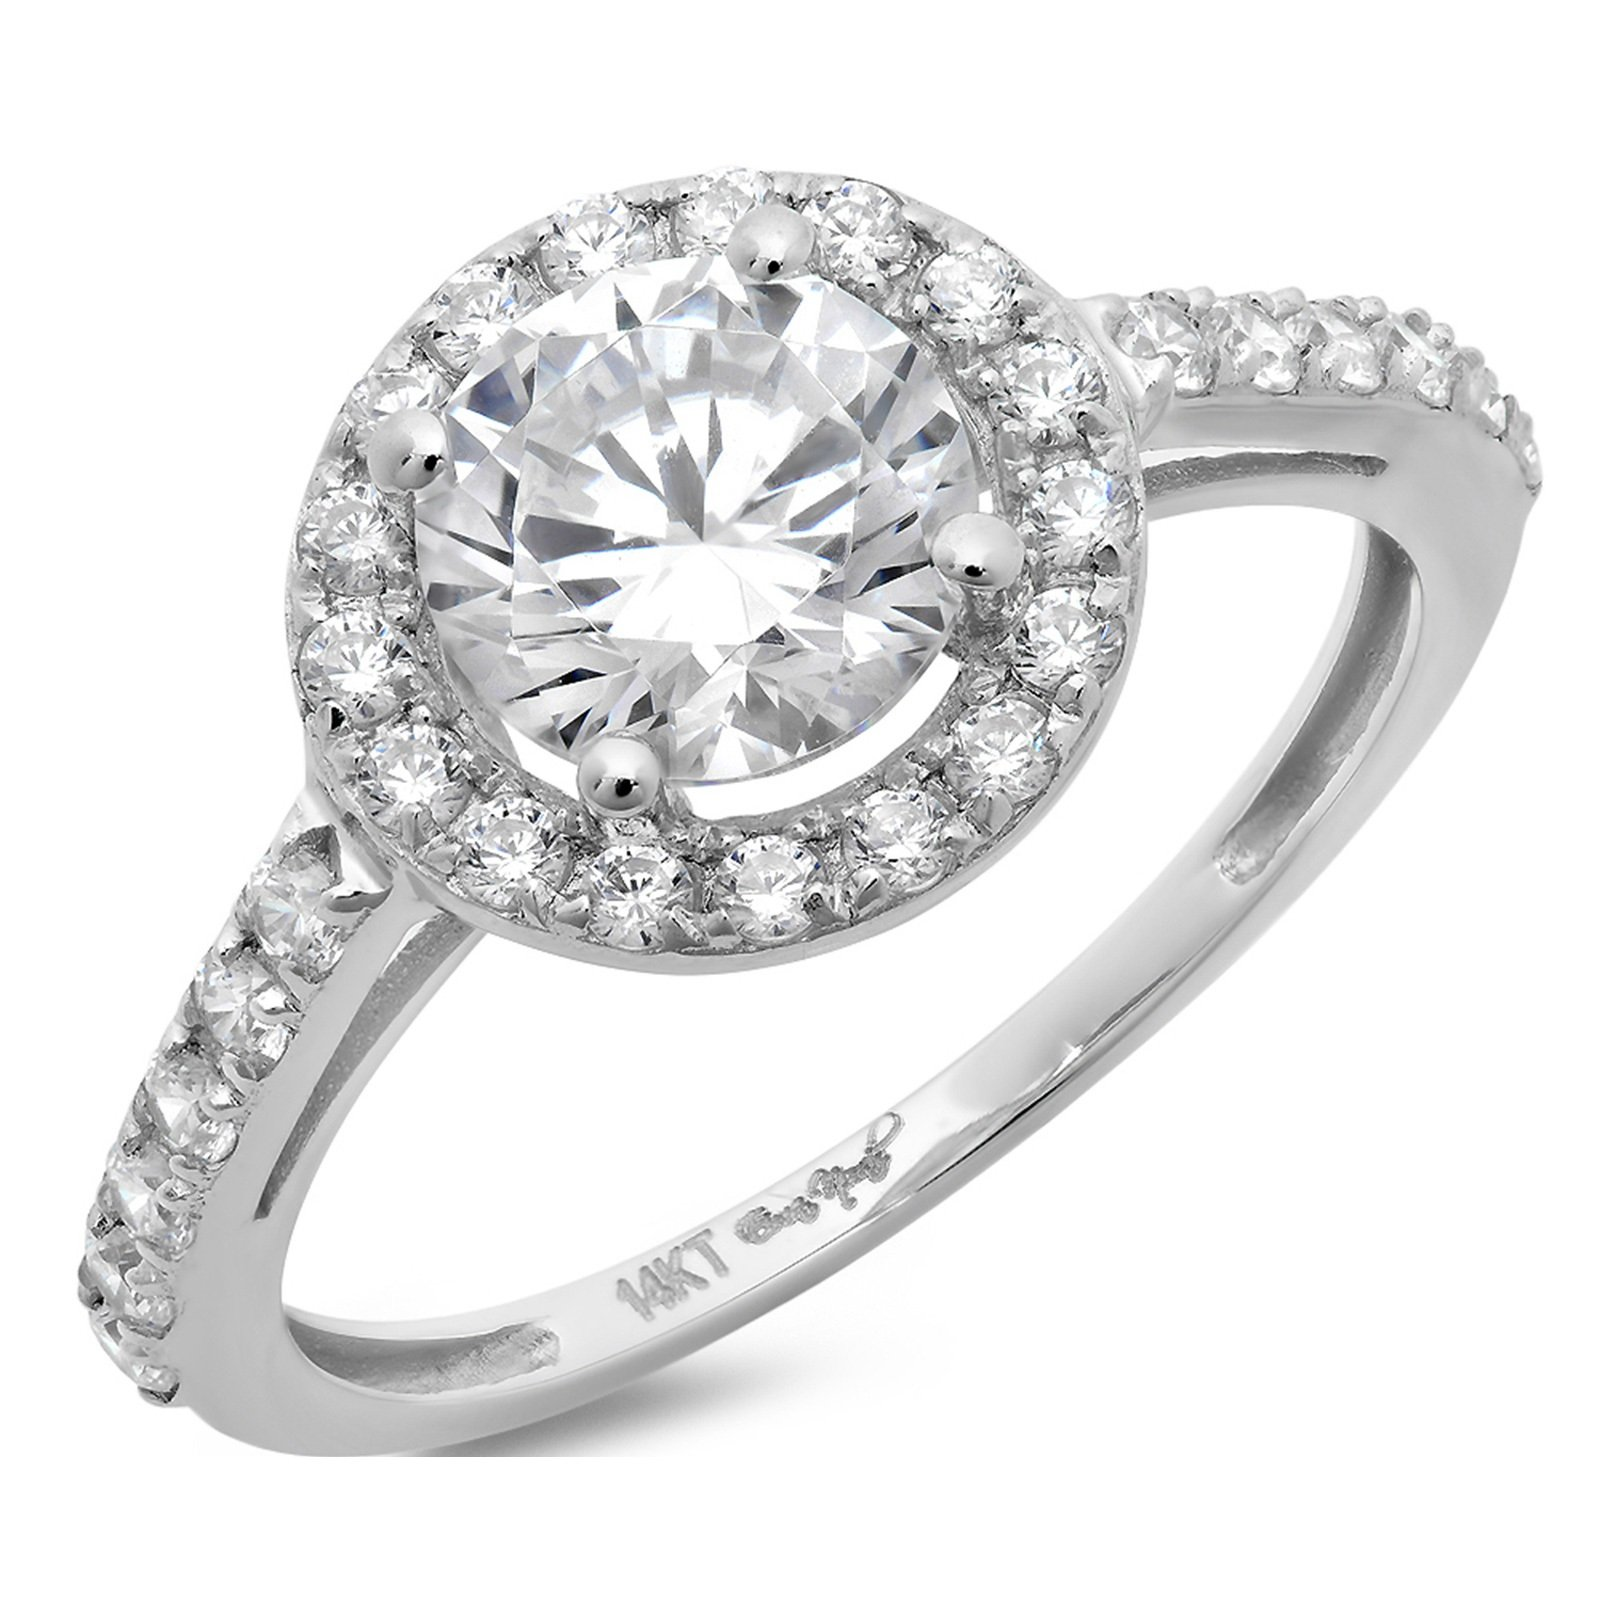 Clara Pucci 2.25 CT Round Cut Solitaire Pave Halo Bridal Band Engagement Ring 14k White Gold, Size 4.5 by Clara Pucci